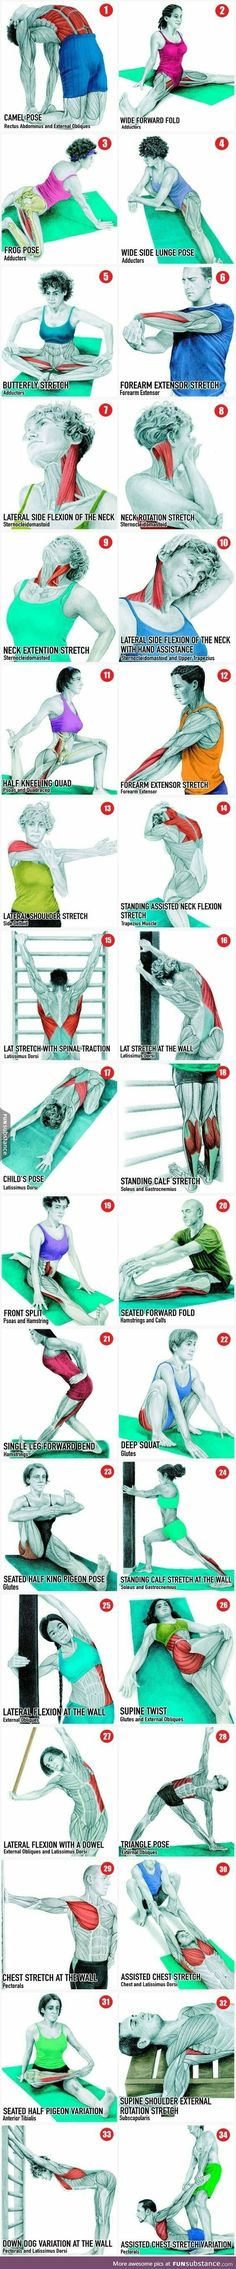 Which muscles get stretched?